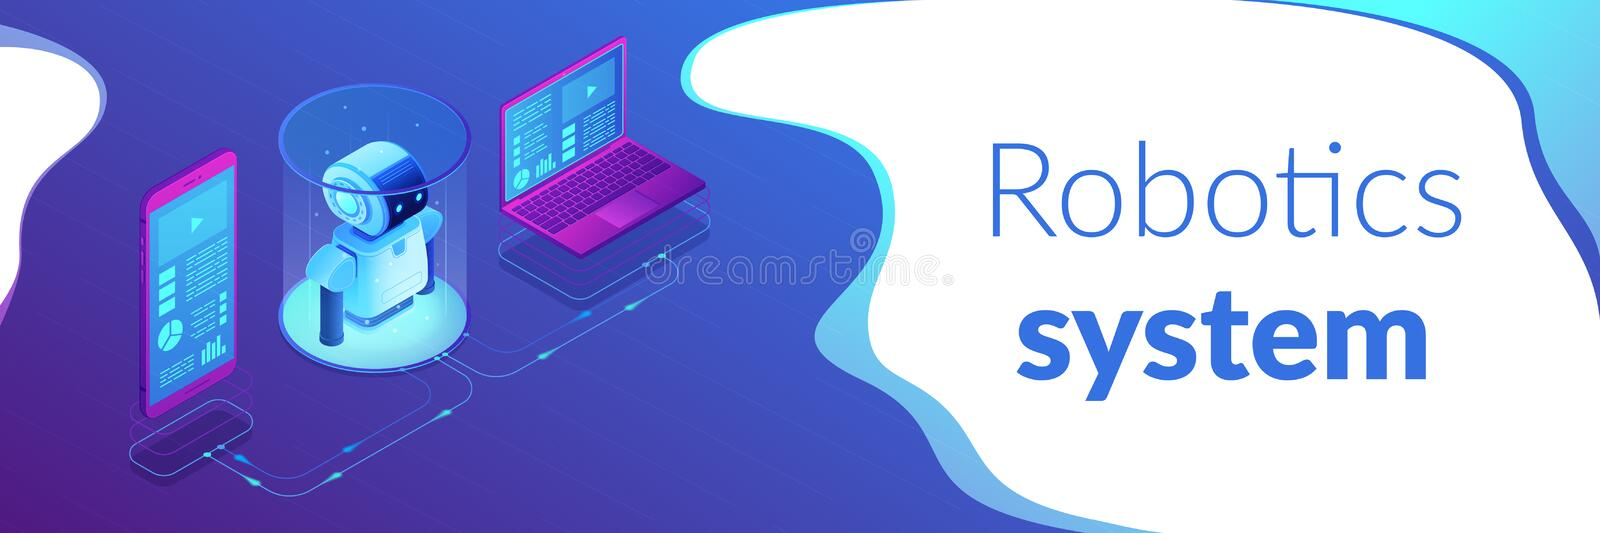 WiFi controlled robotics isometric 3D banner header. Modern robotics system connected with mobile phone and laptop. WiFi controlled robotics, robotics royalty free illustration